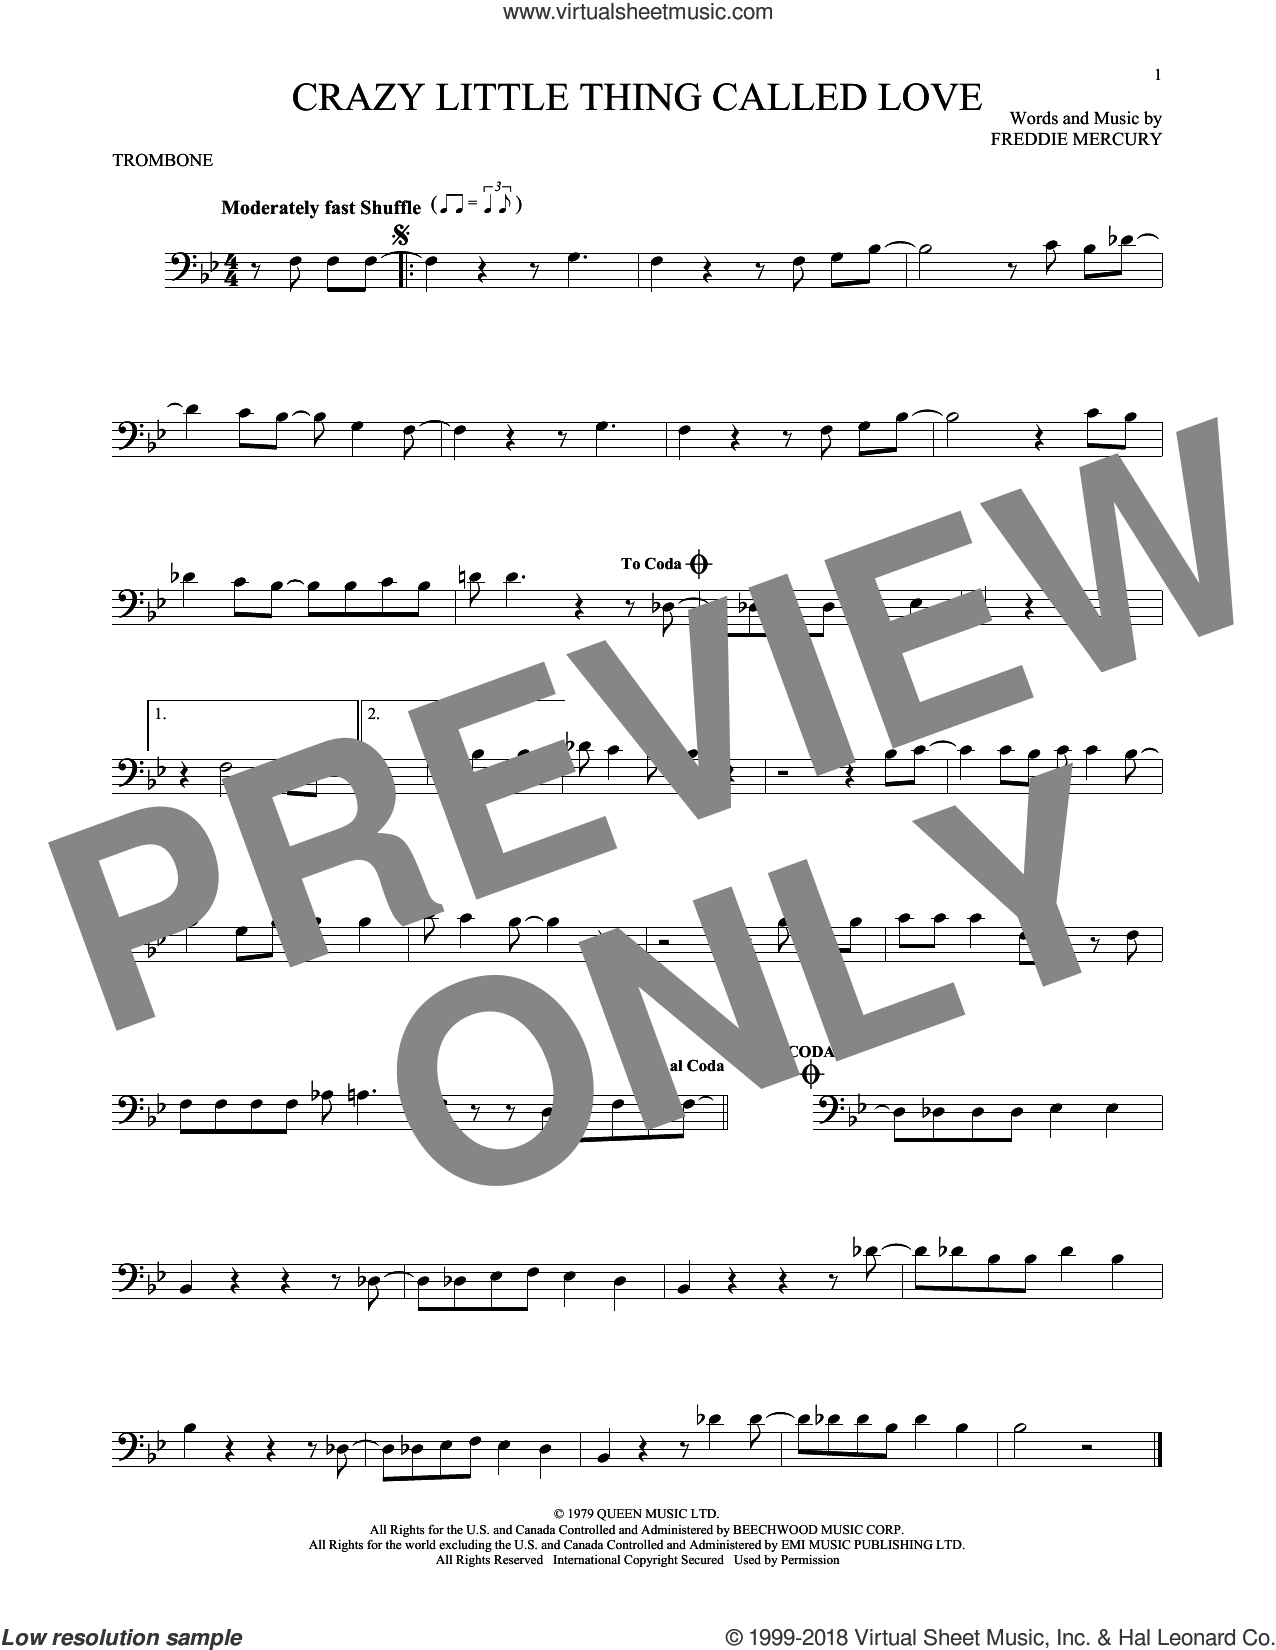 Crazy Little Thing Called Love sheet music for trombone solo by Queen, Dwight Yoakam and Freddie Mercury, intermediate skill level